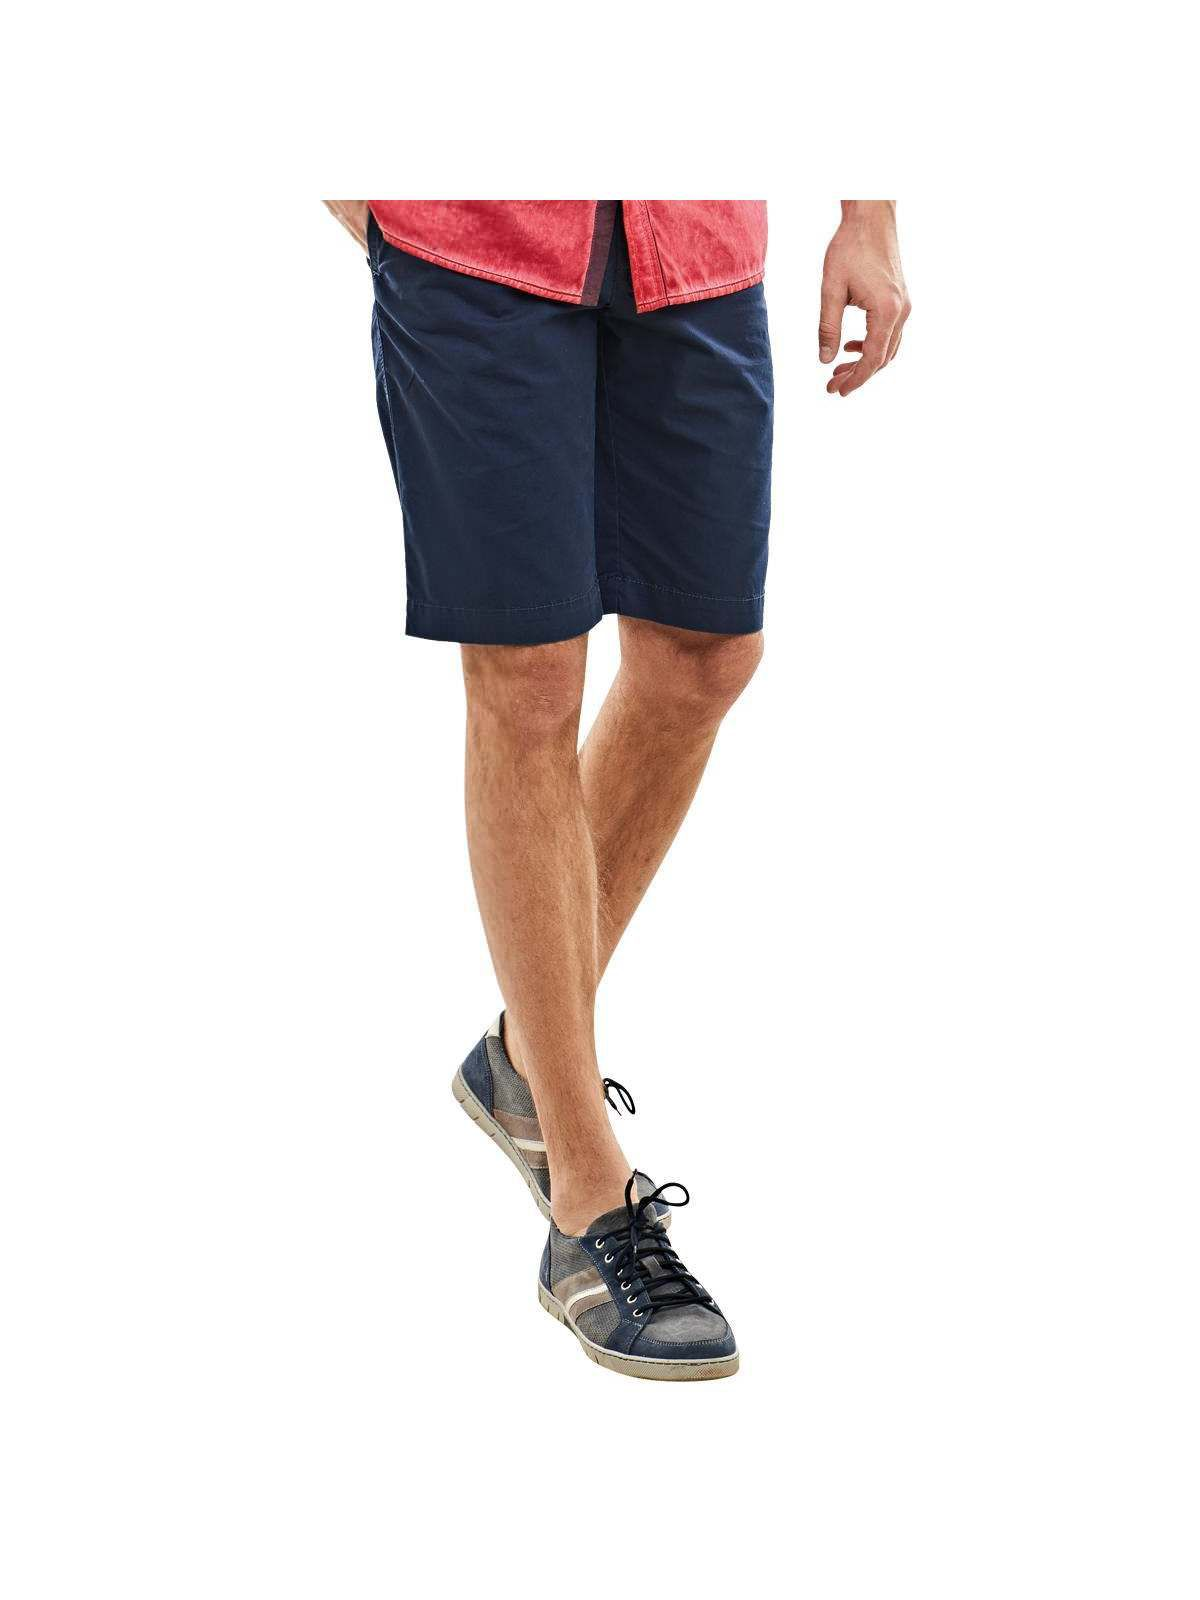 ENGBERS engbers Chino Shorts mit tollen Steppelementen